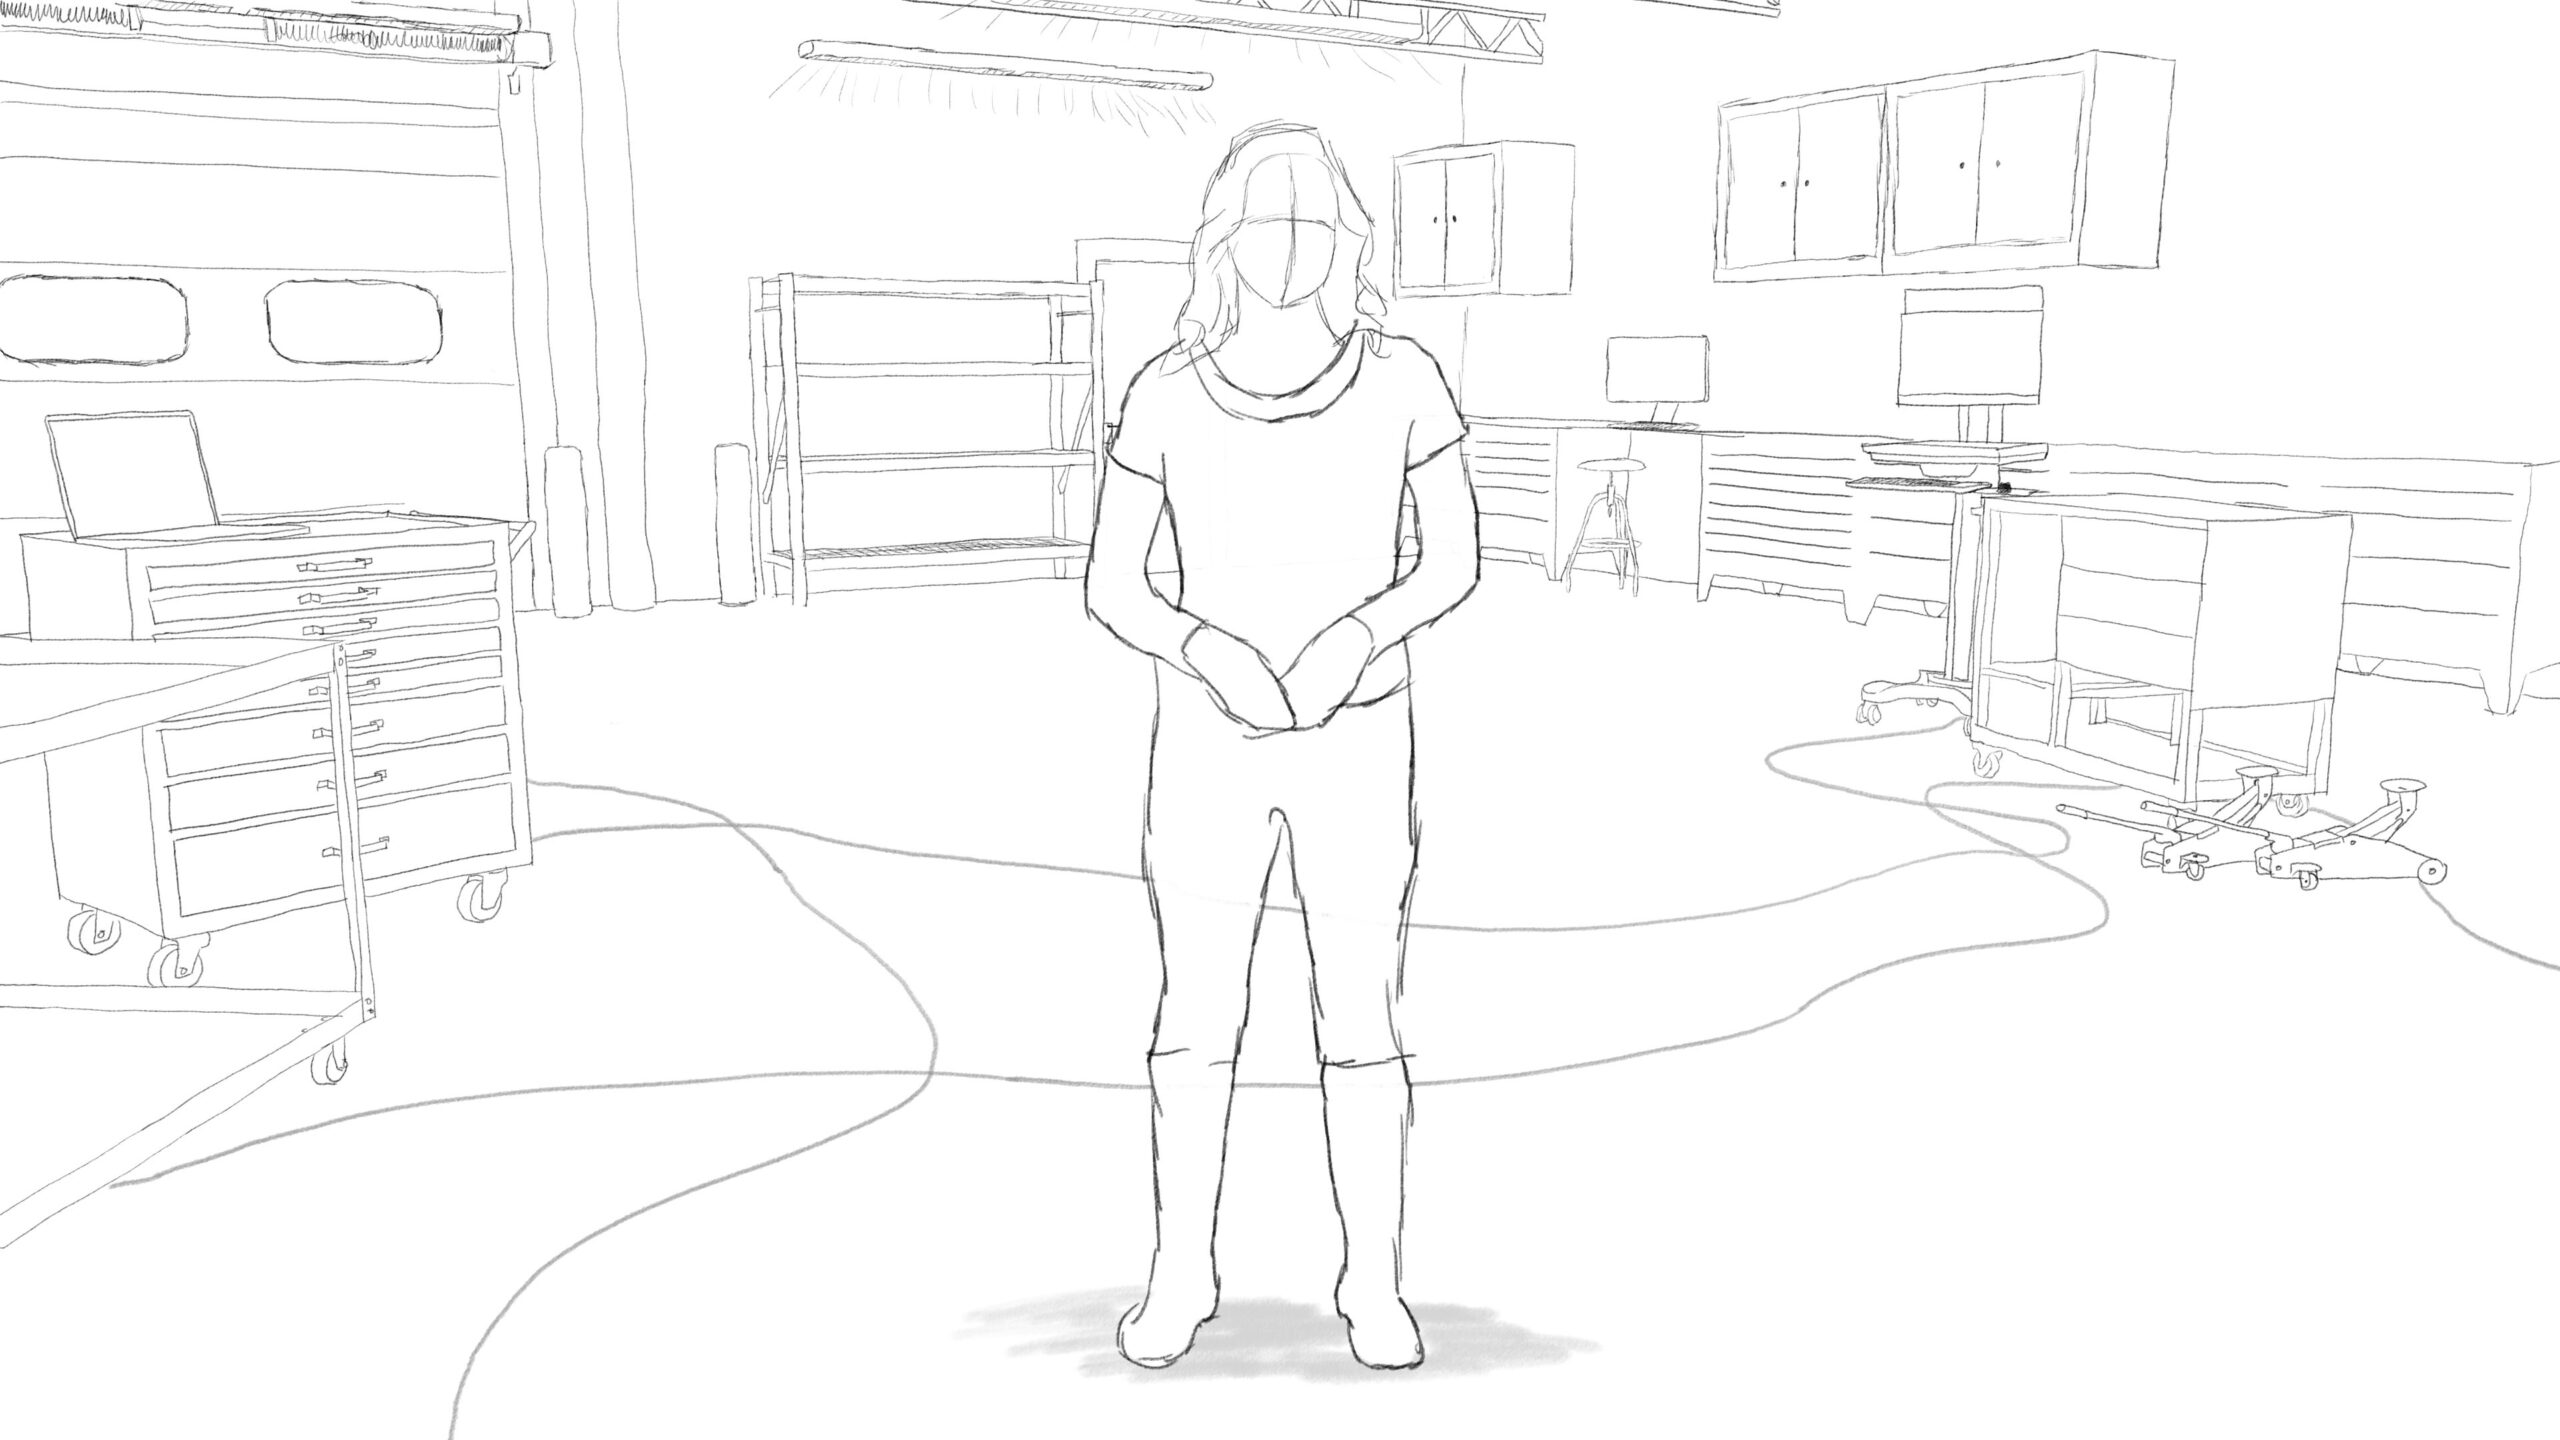 Pitney Bowes RumbleOn concept art - main, wide-view drawing of a person standing in a garage